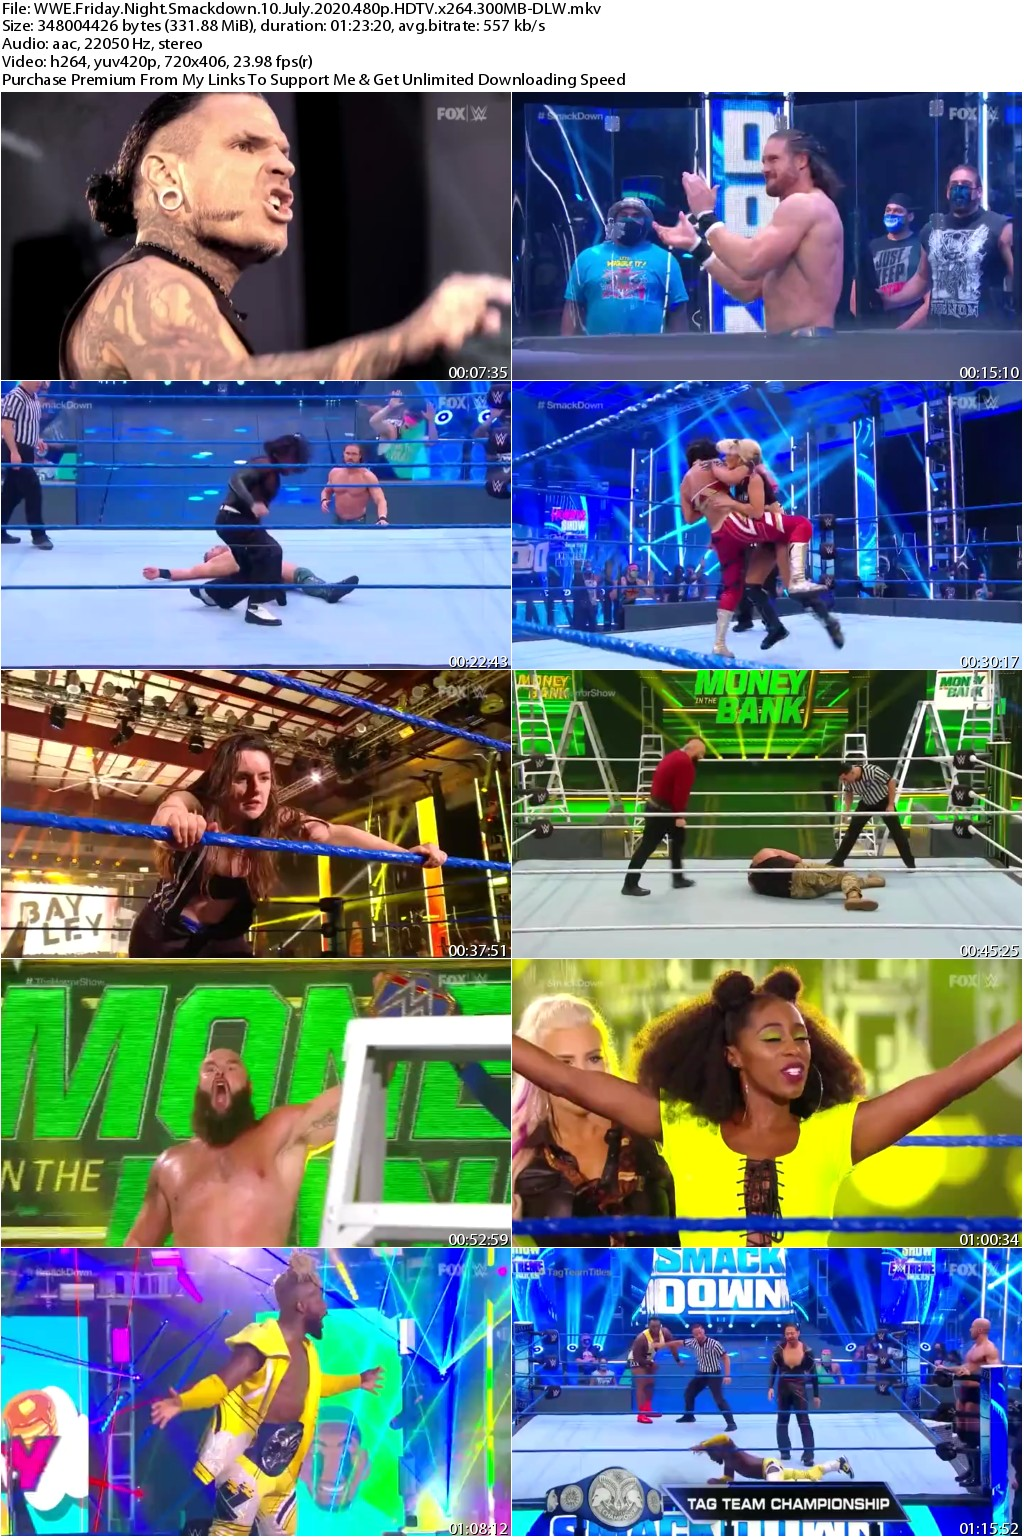 WWE Friday Night Smackdown 10 July 2020 480p HDTV x264 300MB-DLW